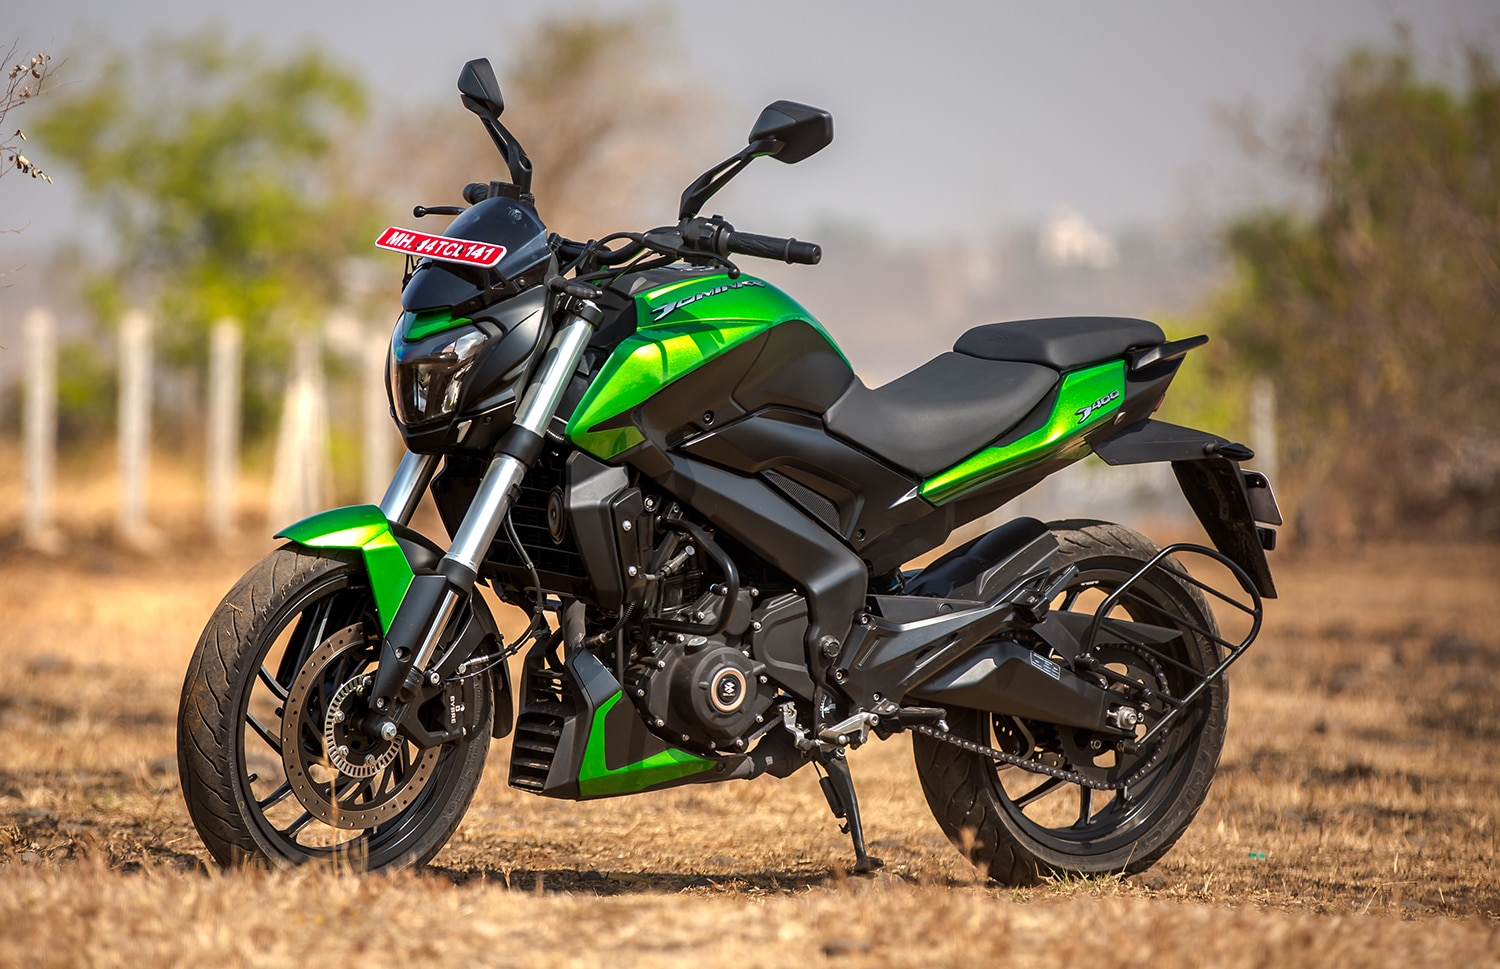 2019 Bajaj Dominar 400 UG Accessories To Be Launched Soon